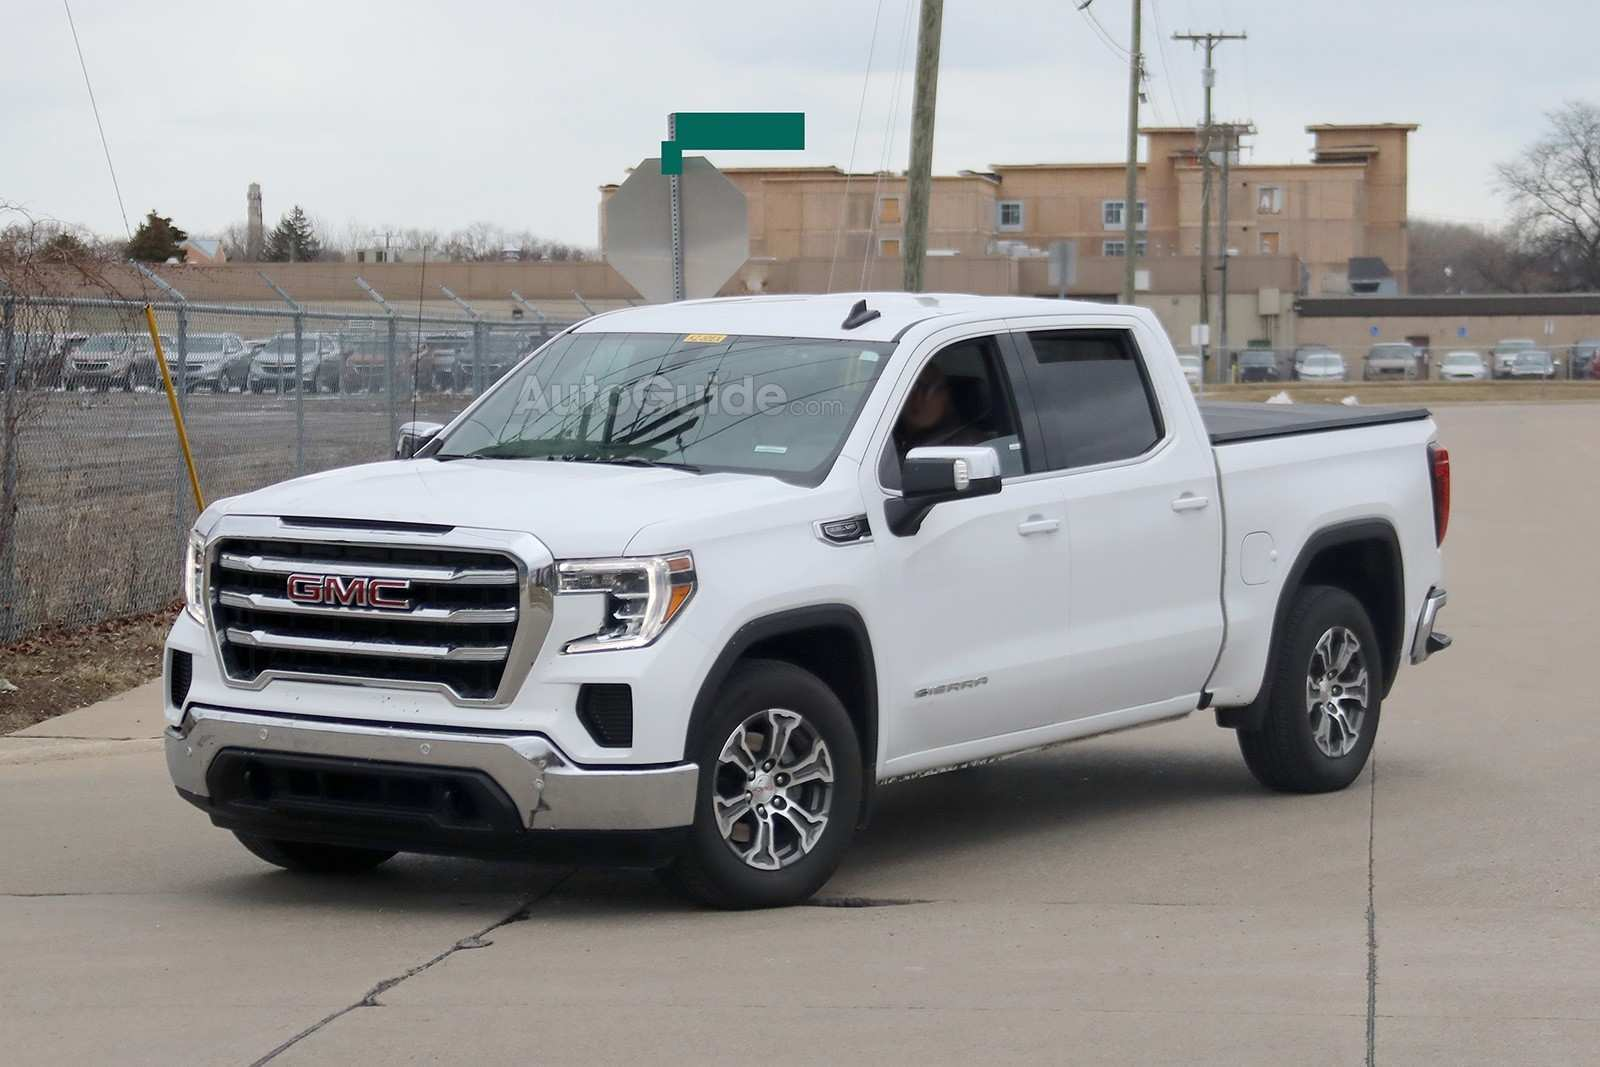 57 Gallery of Best 2019 Gmc Denali Pickup Exterior And Interior Review History with Best 2019 Gmc Denali Pickup Exterior And Interior Review